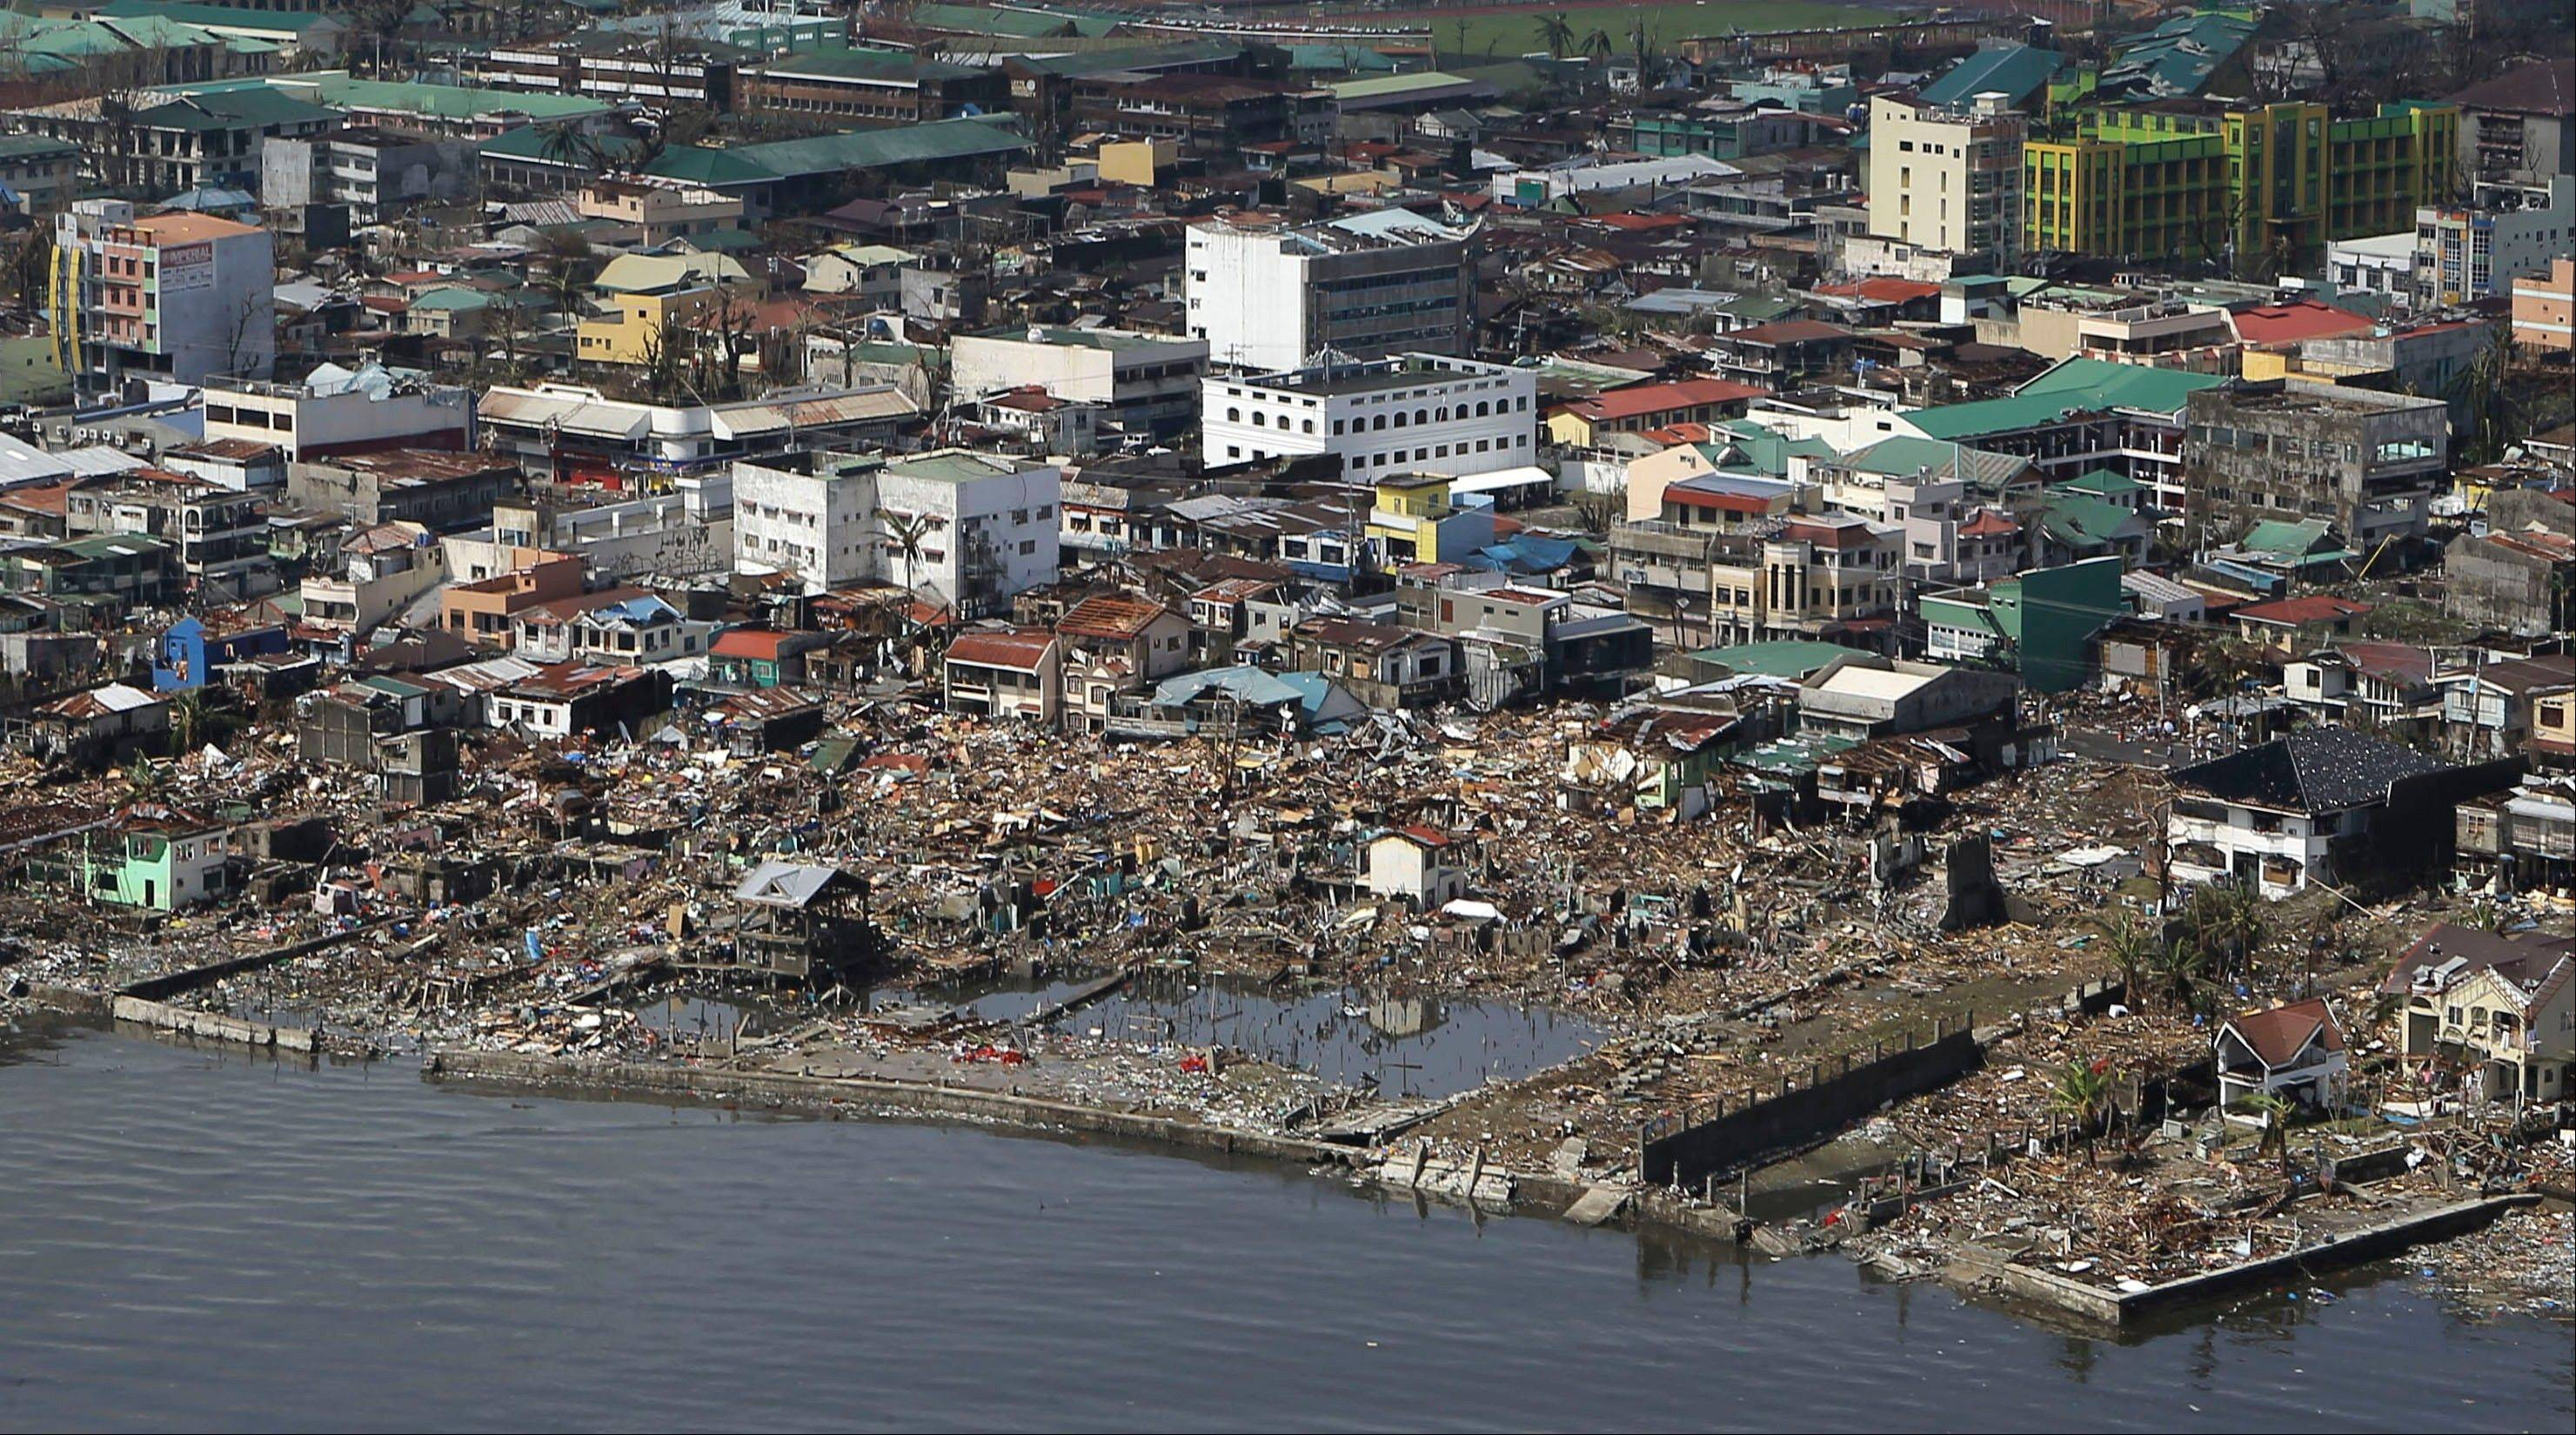 The devastation caused by Typhoon Haiyan in Tacloban city, Leyte province in central Philippines. Typhoon Haiyan, one of the most powerful storms on record, slammed into six central Philippine islands on Friday, leaving a wide swath of destruction and scores of people dead.